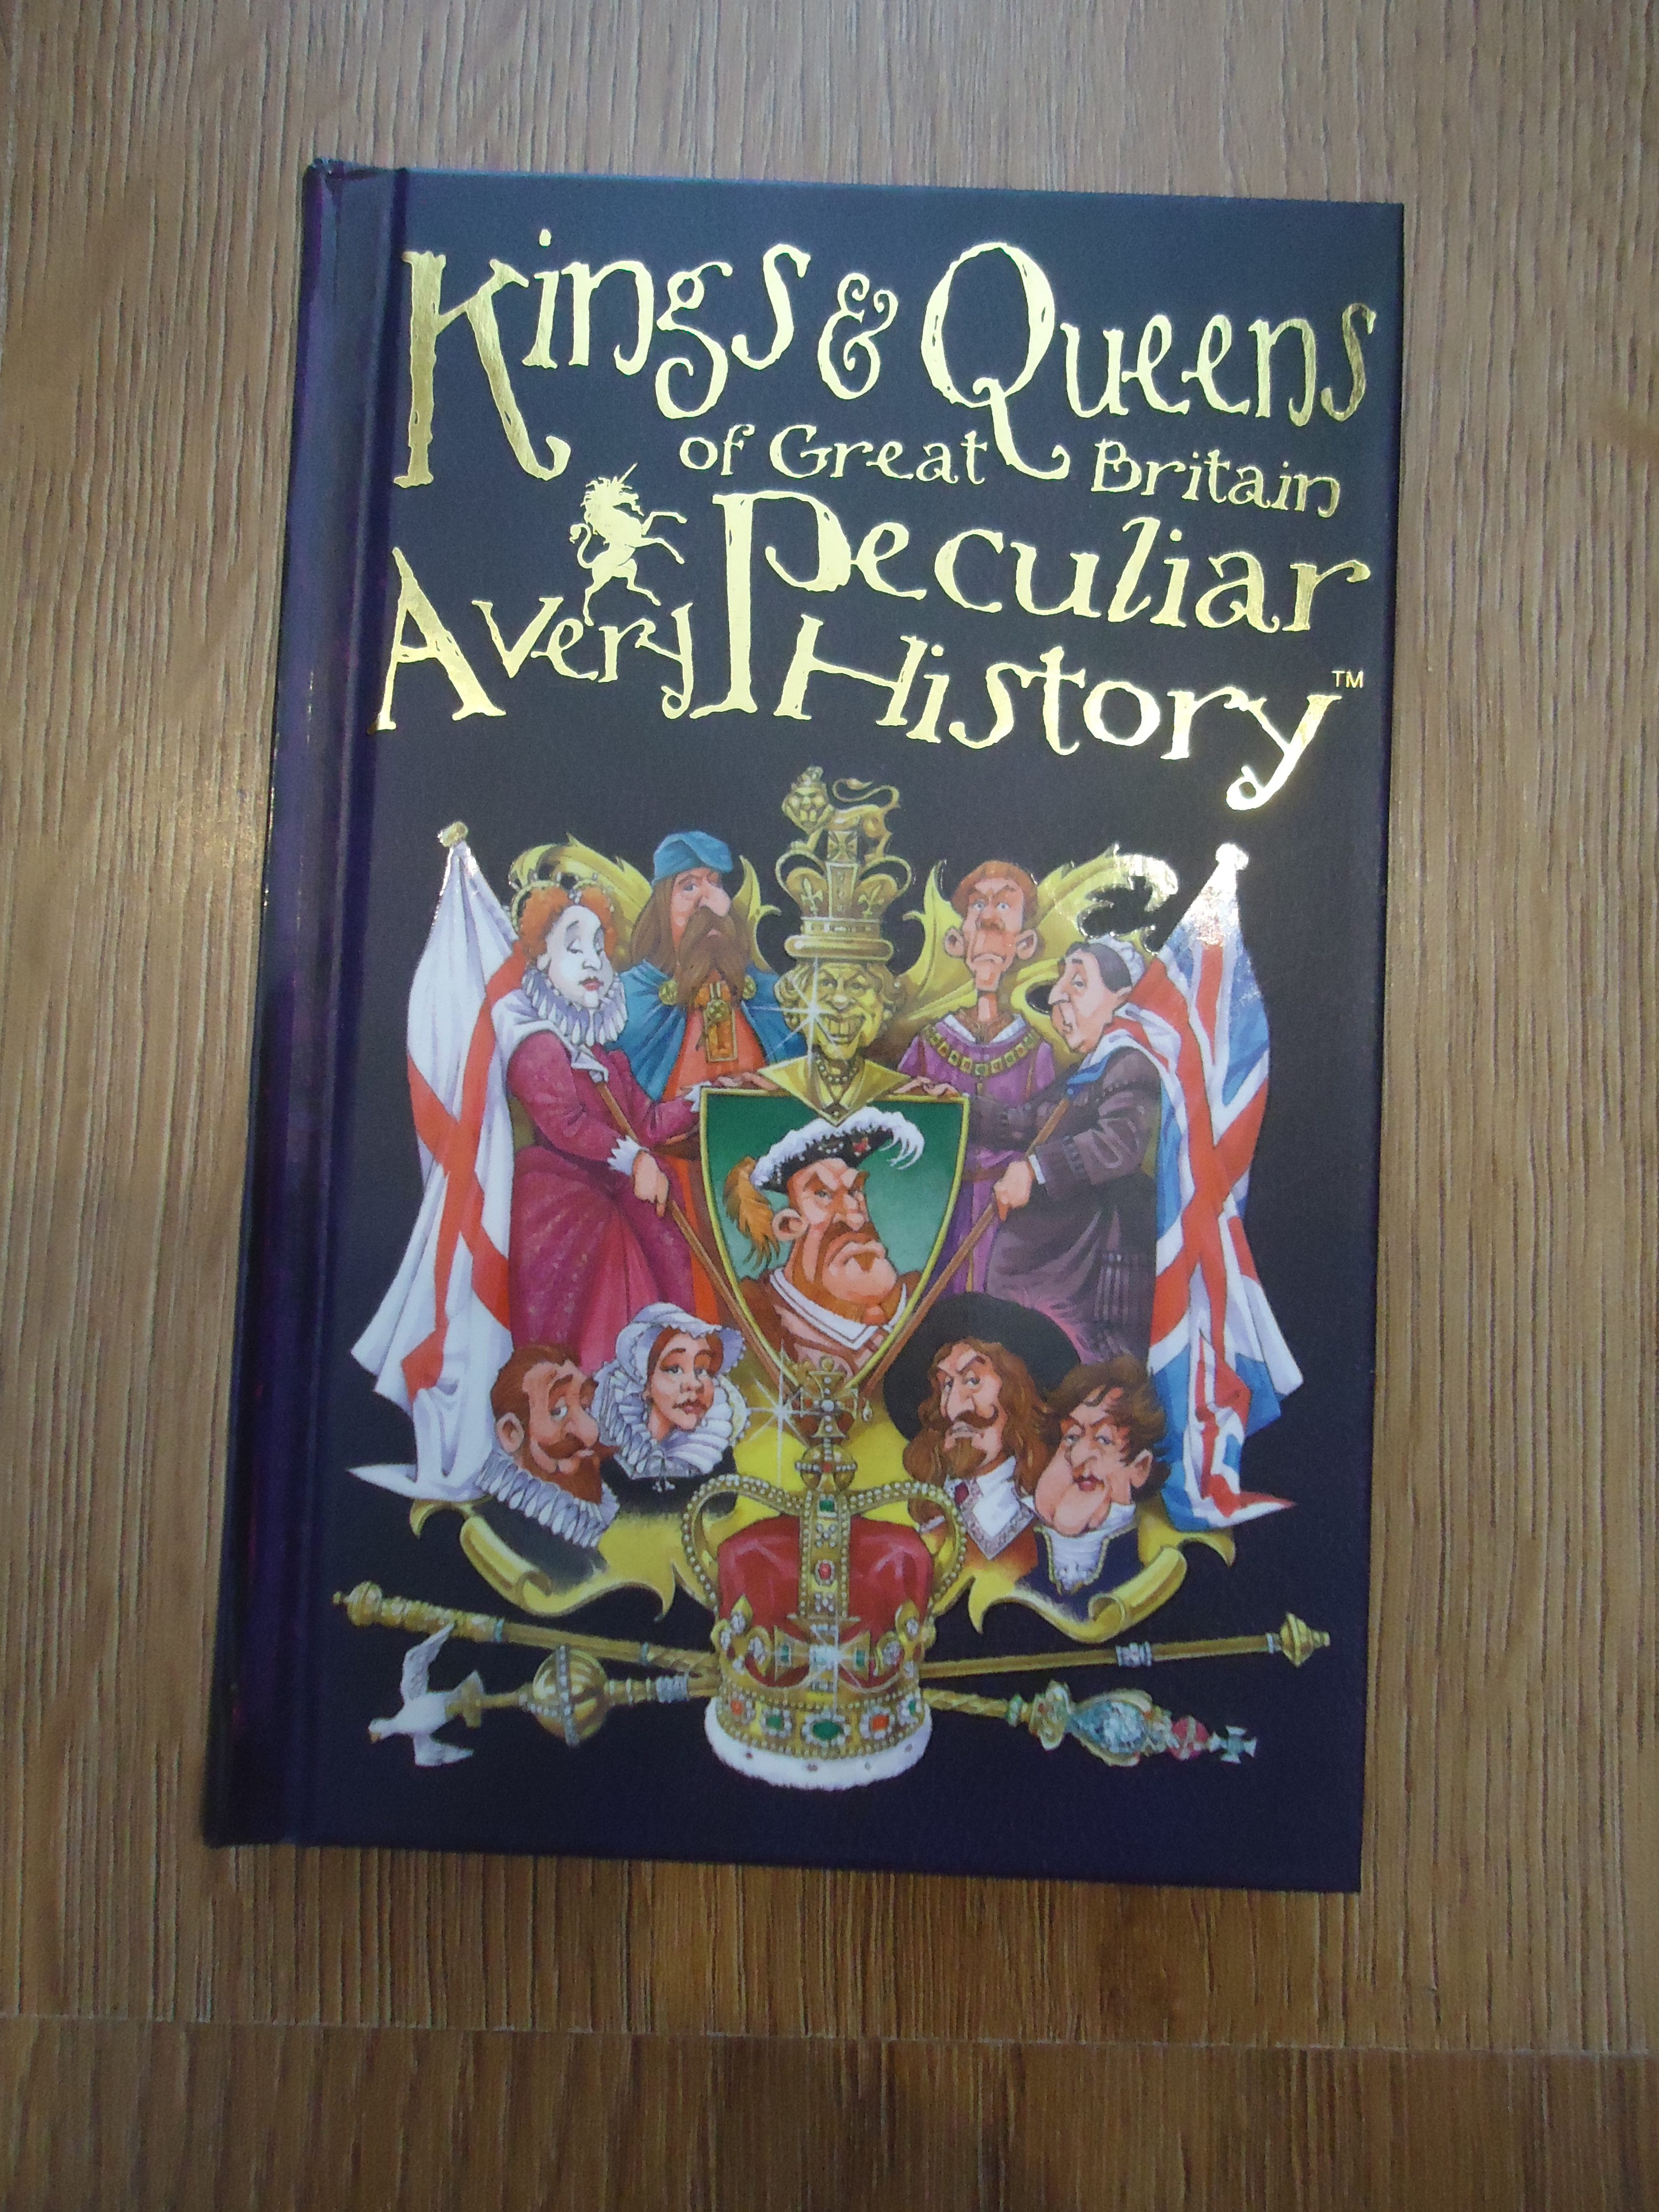 Kings and Queens, History, A very peculiar History, children's books, quirky books, pocket size books